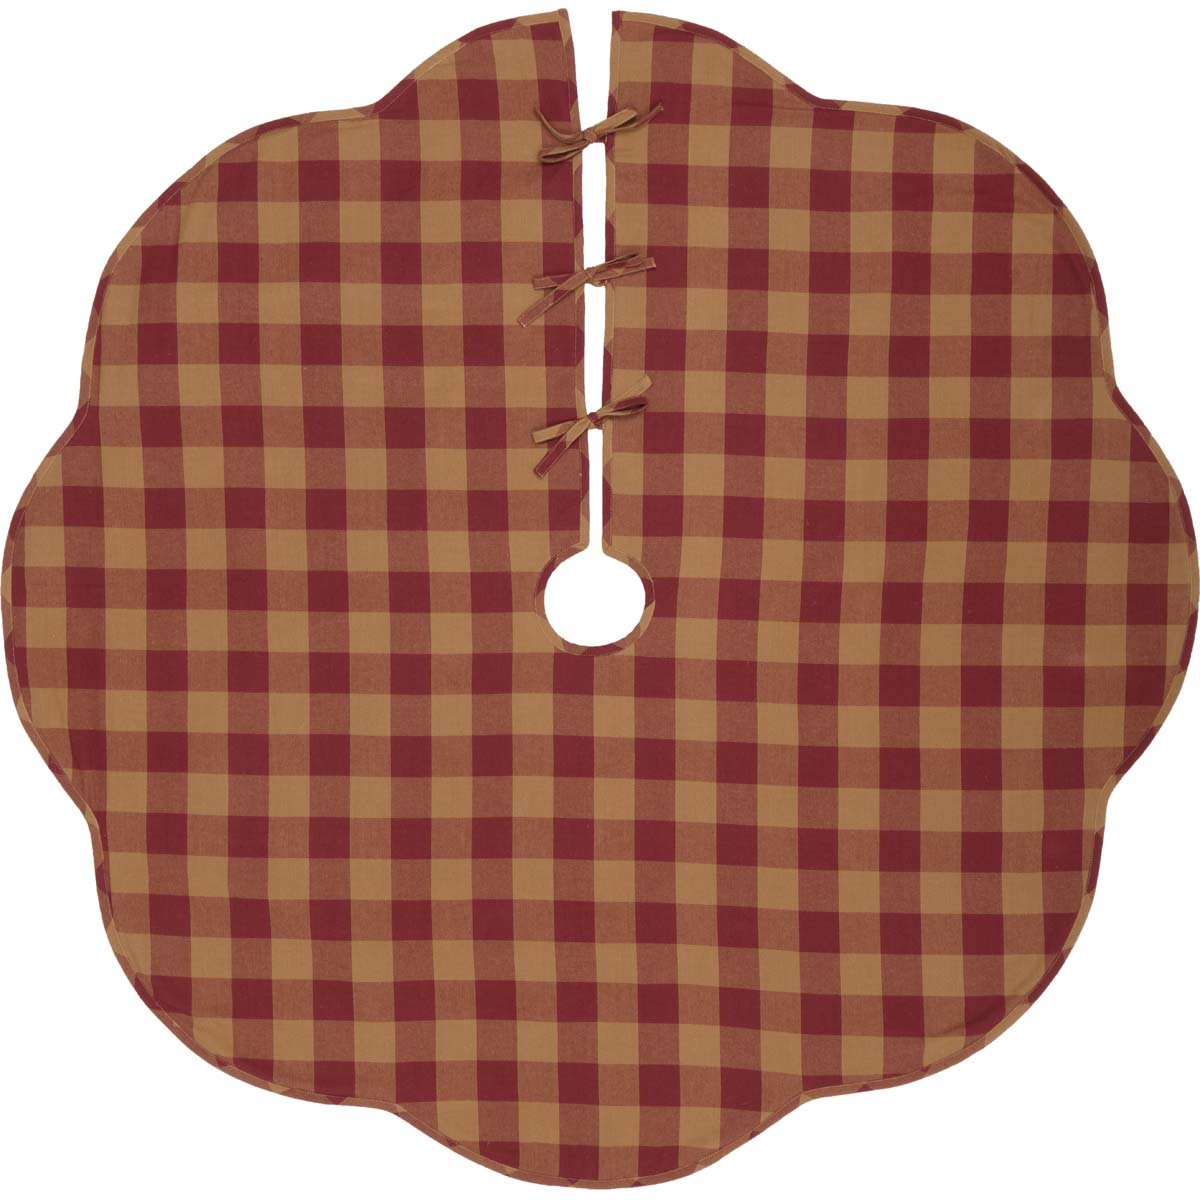 VHC Brands Primitive Holiday Decor - Burgundy Check Red Scalloped Tree Skirt, 60''